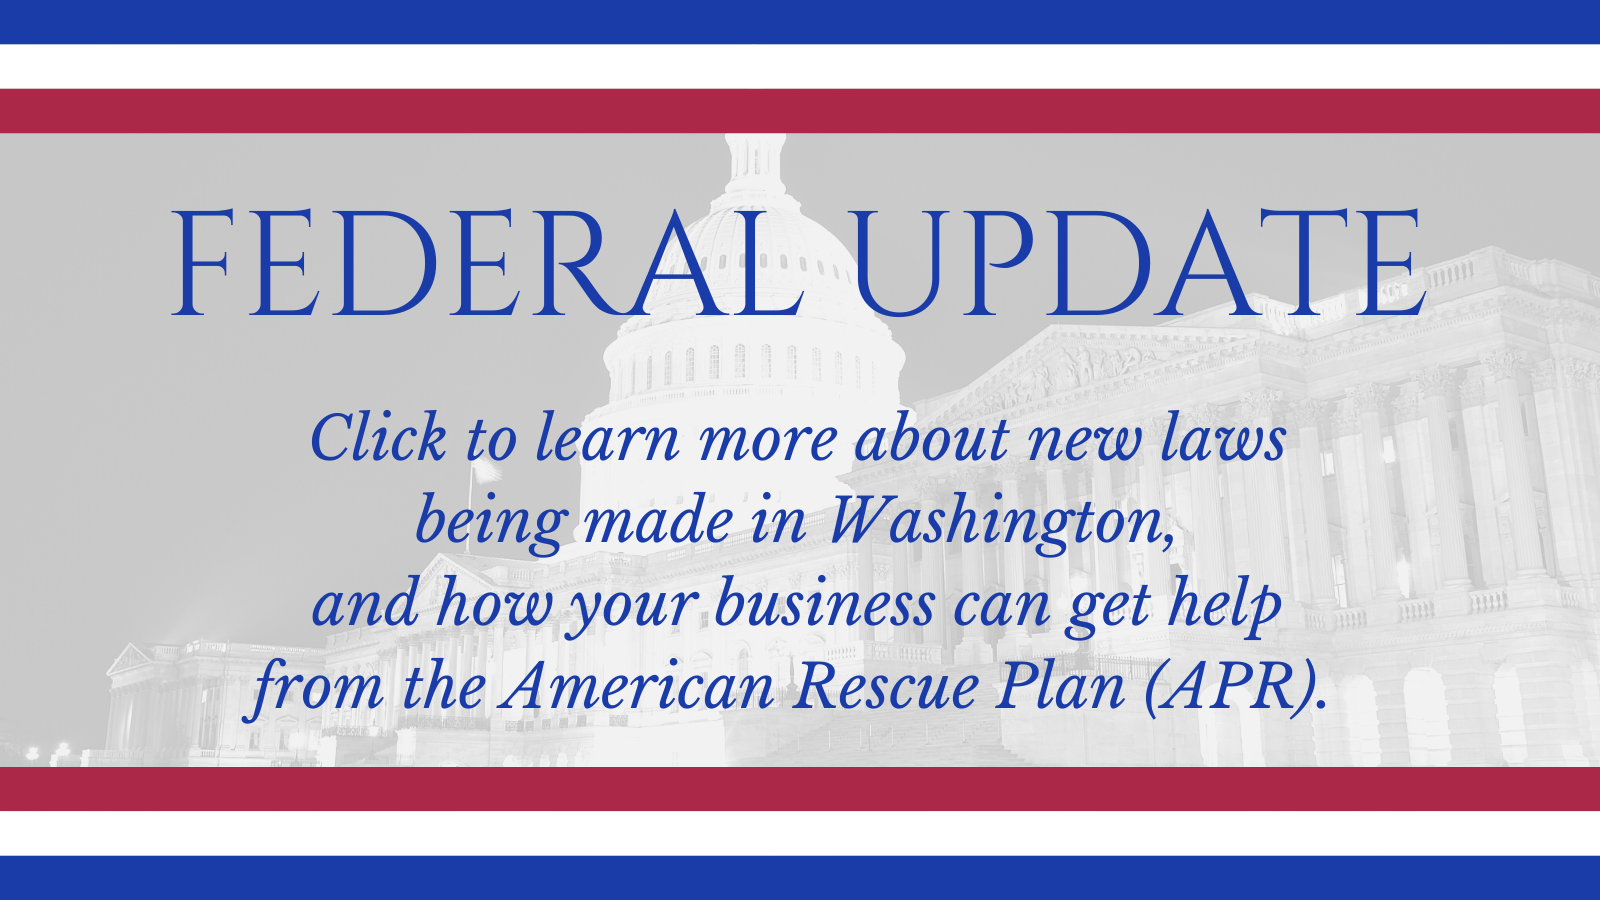 How to get help from American Rescue Plan